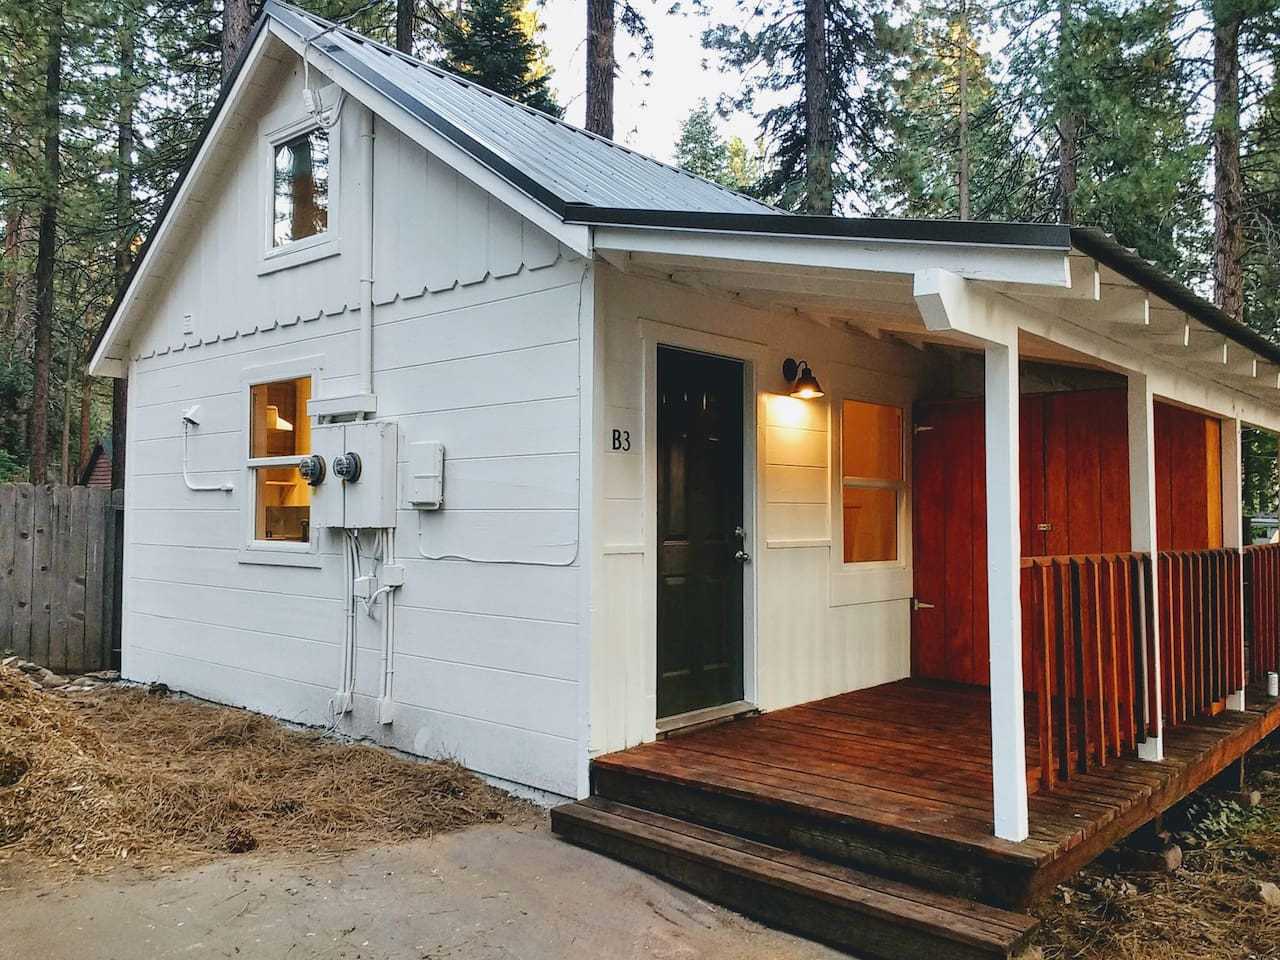 The cabin is on the left side of the duplex.